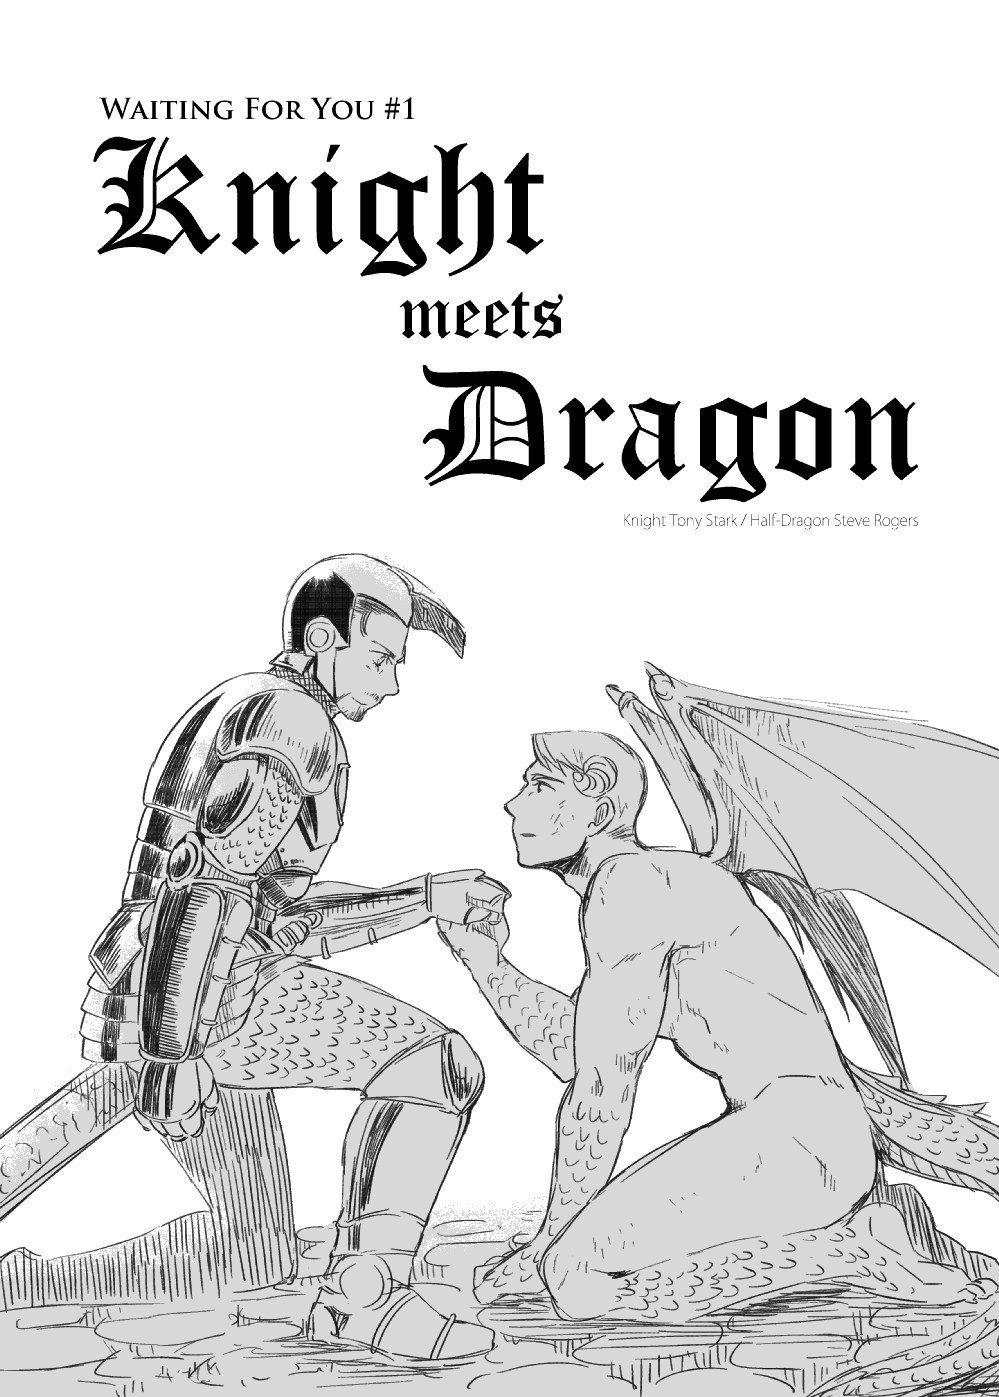 Waiting For You#1 Knight meets Dragon